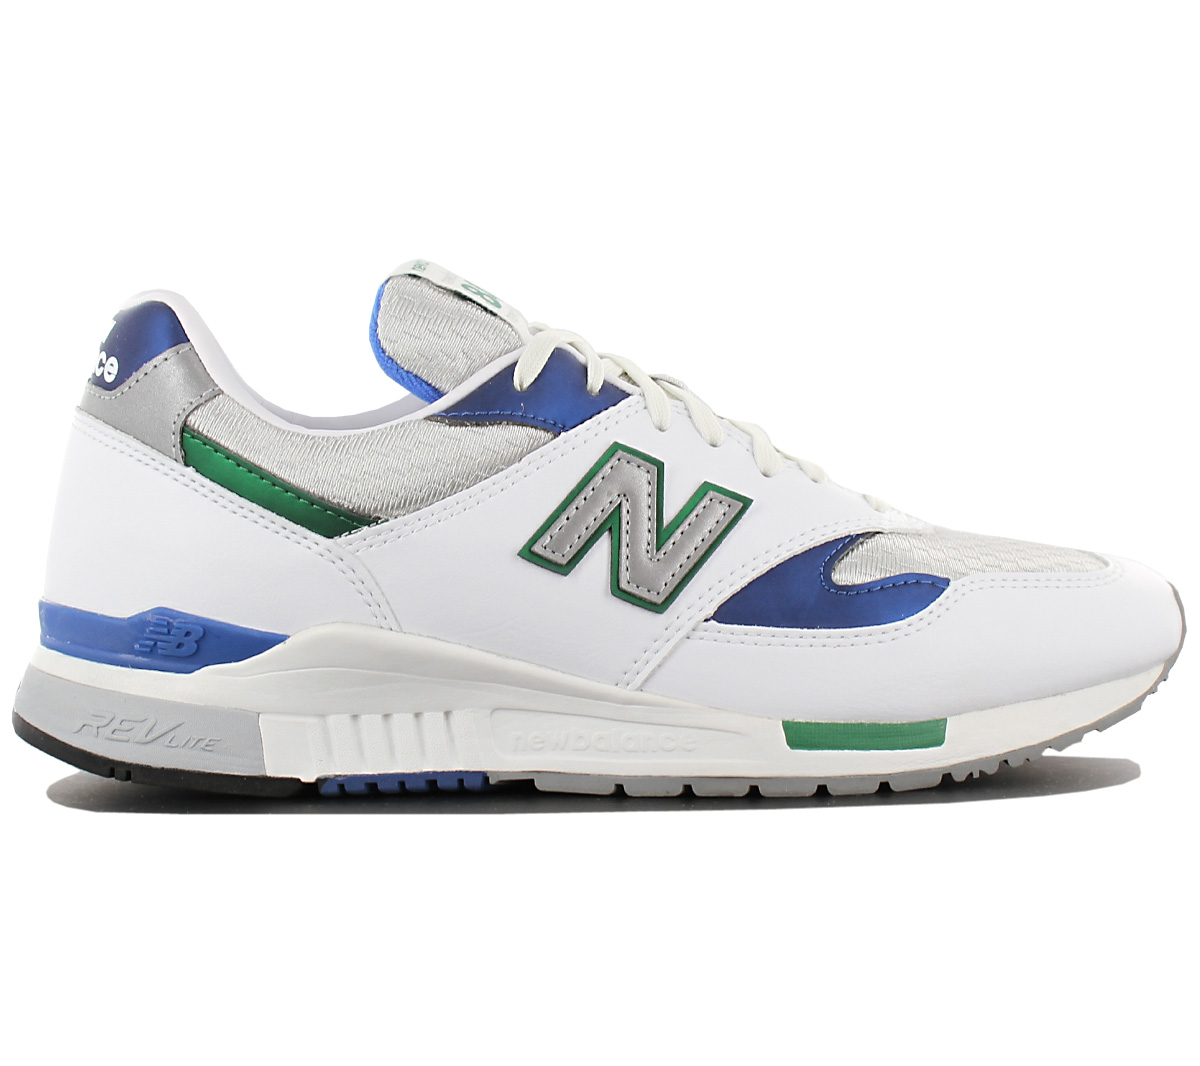 Details about New Balance Classics 840 Ml840ab Revlite Men's Sneaker Shoes  White